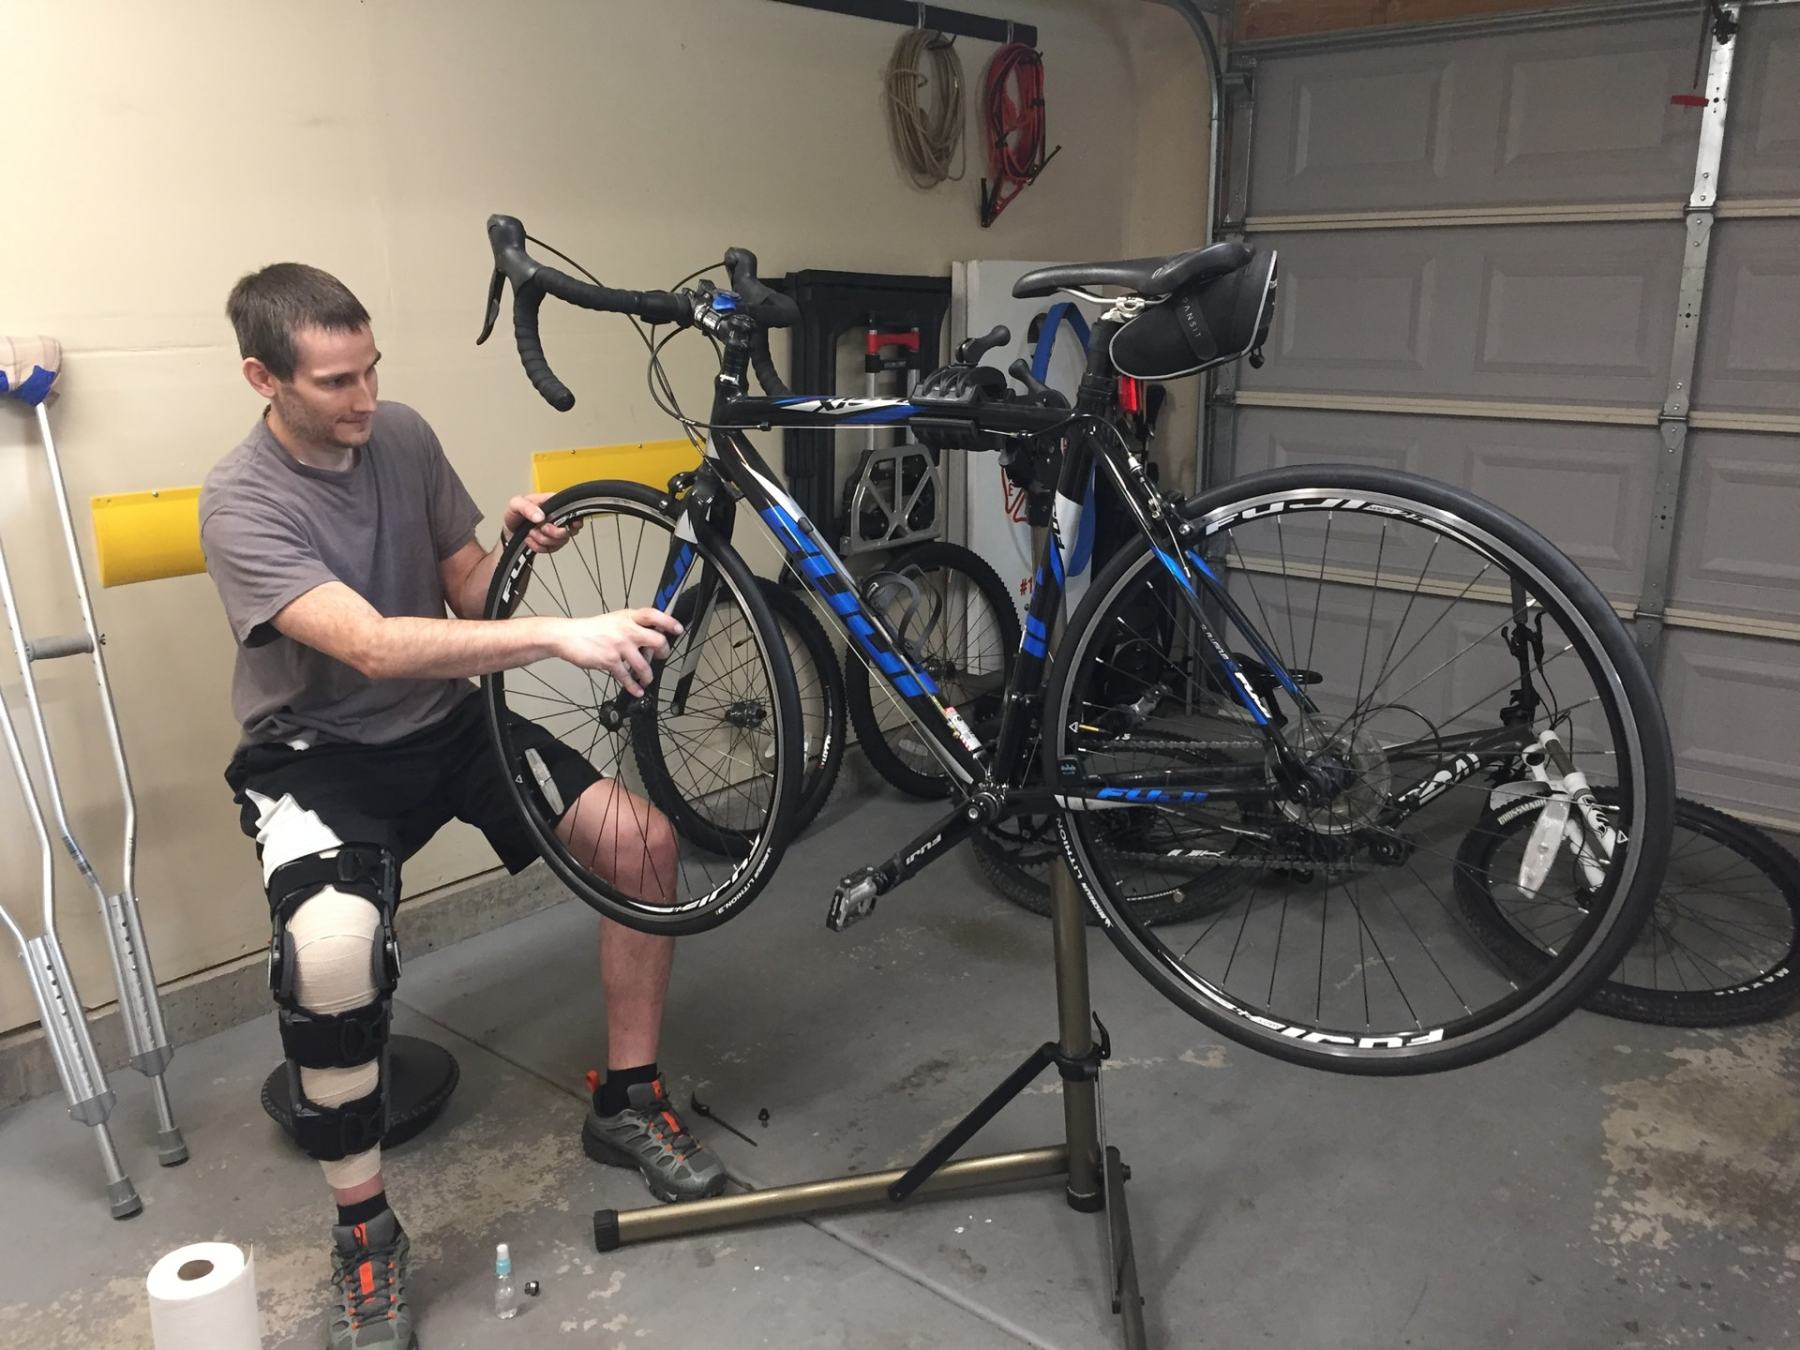 Keith insisted on bike maintenance.  Good thing he has a great assistant!